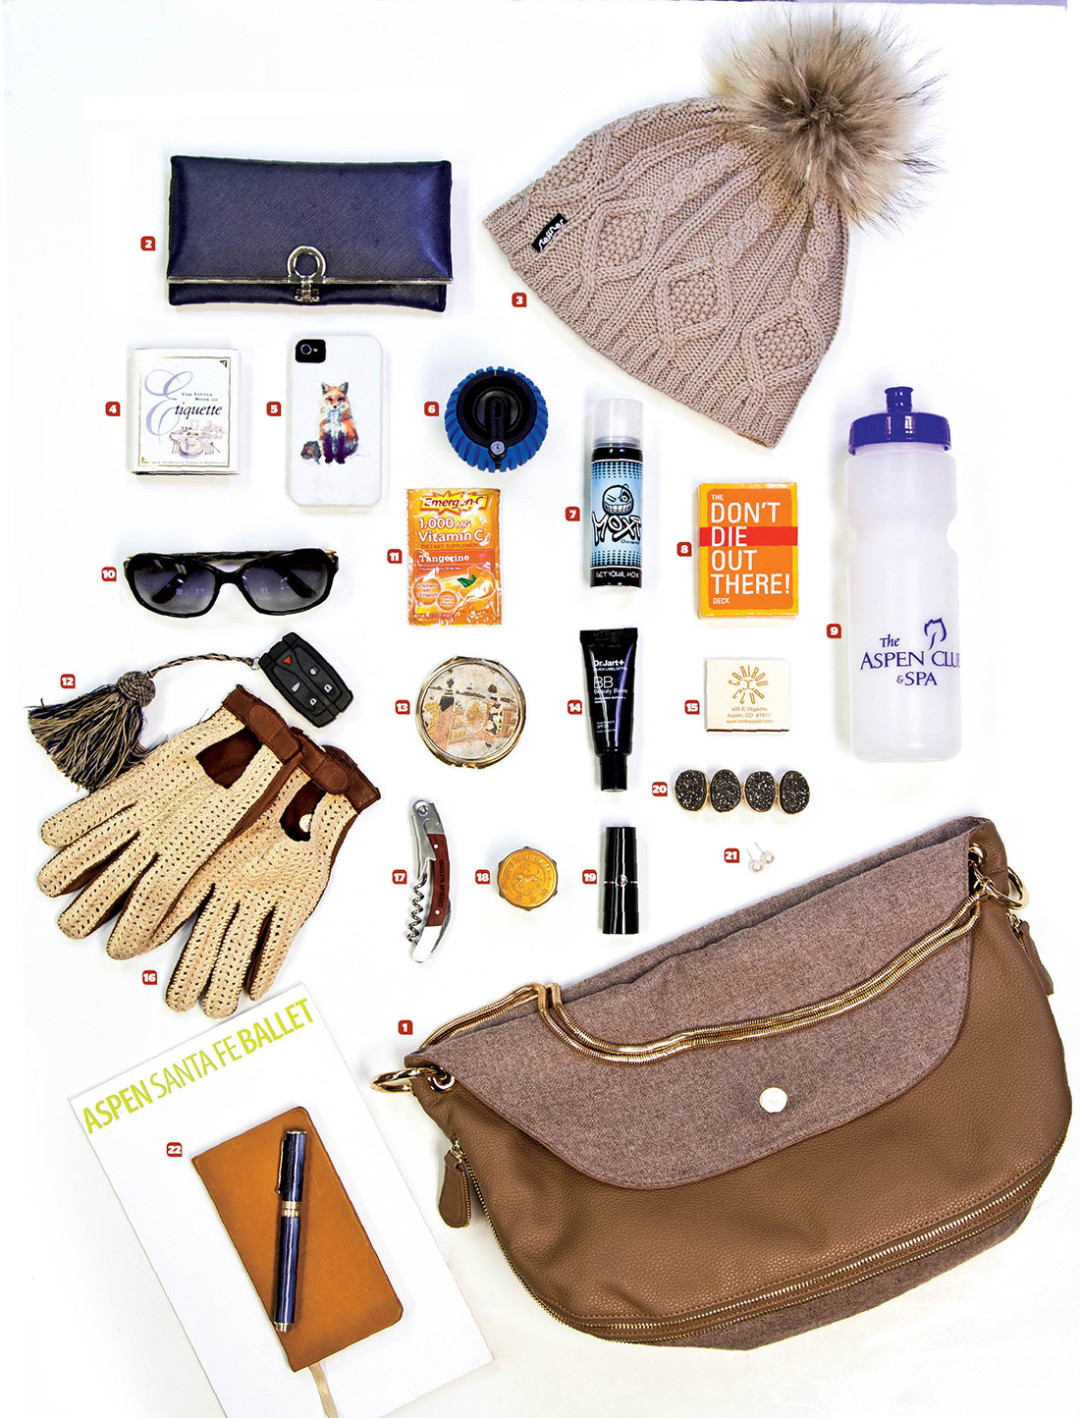 0214 whats in your bag main jcoqyl